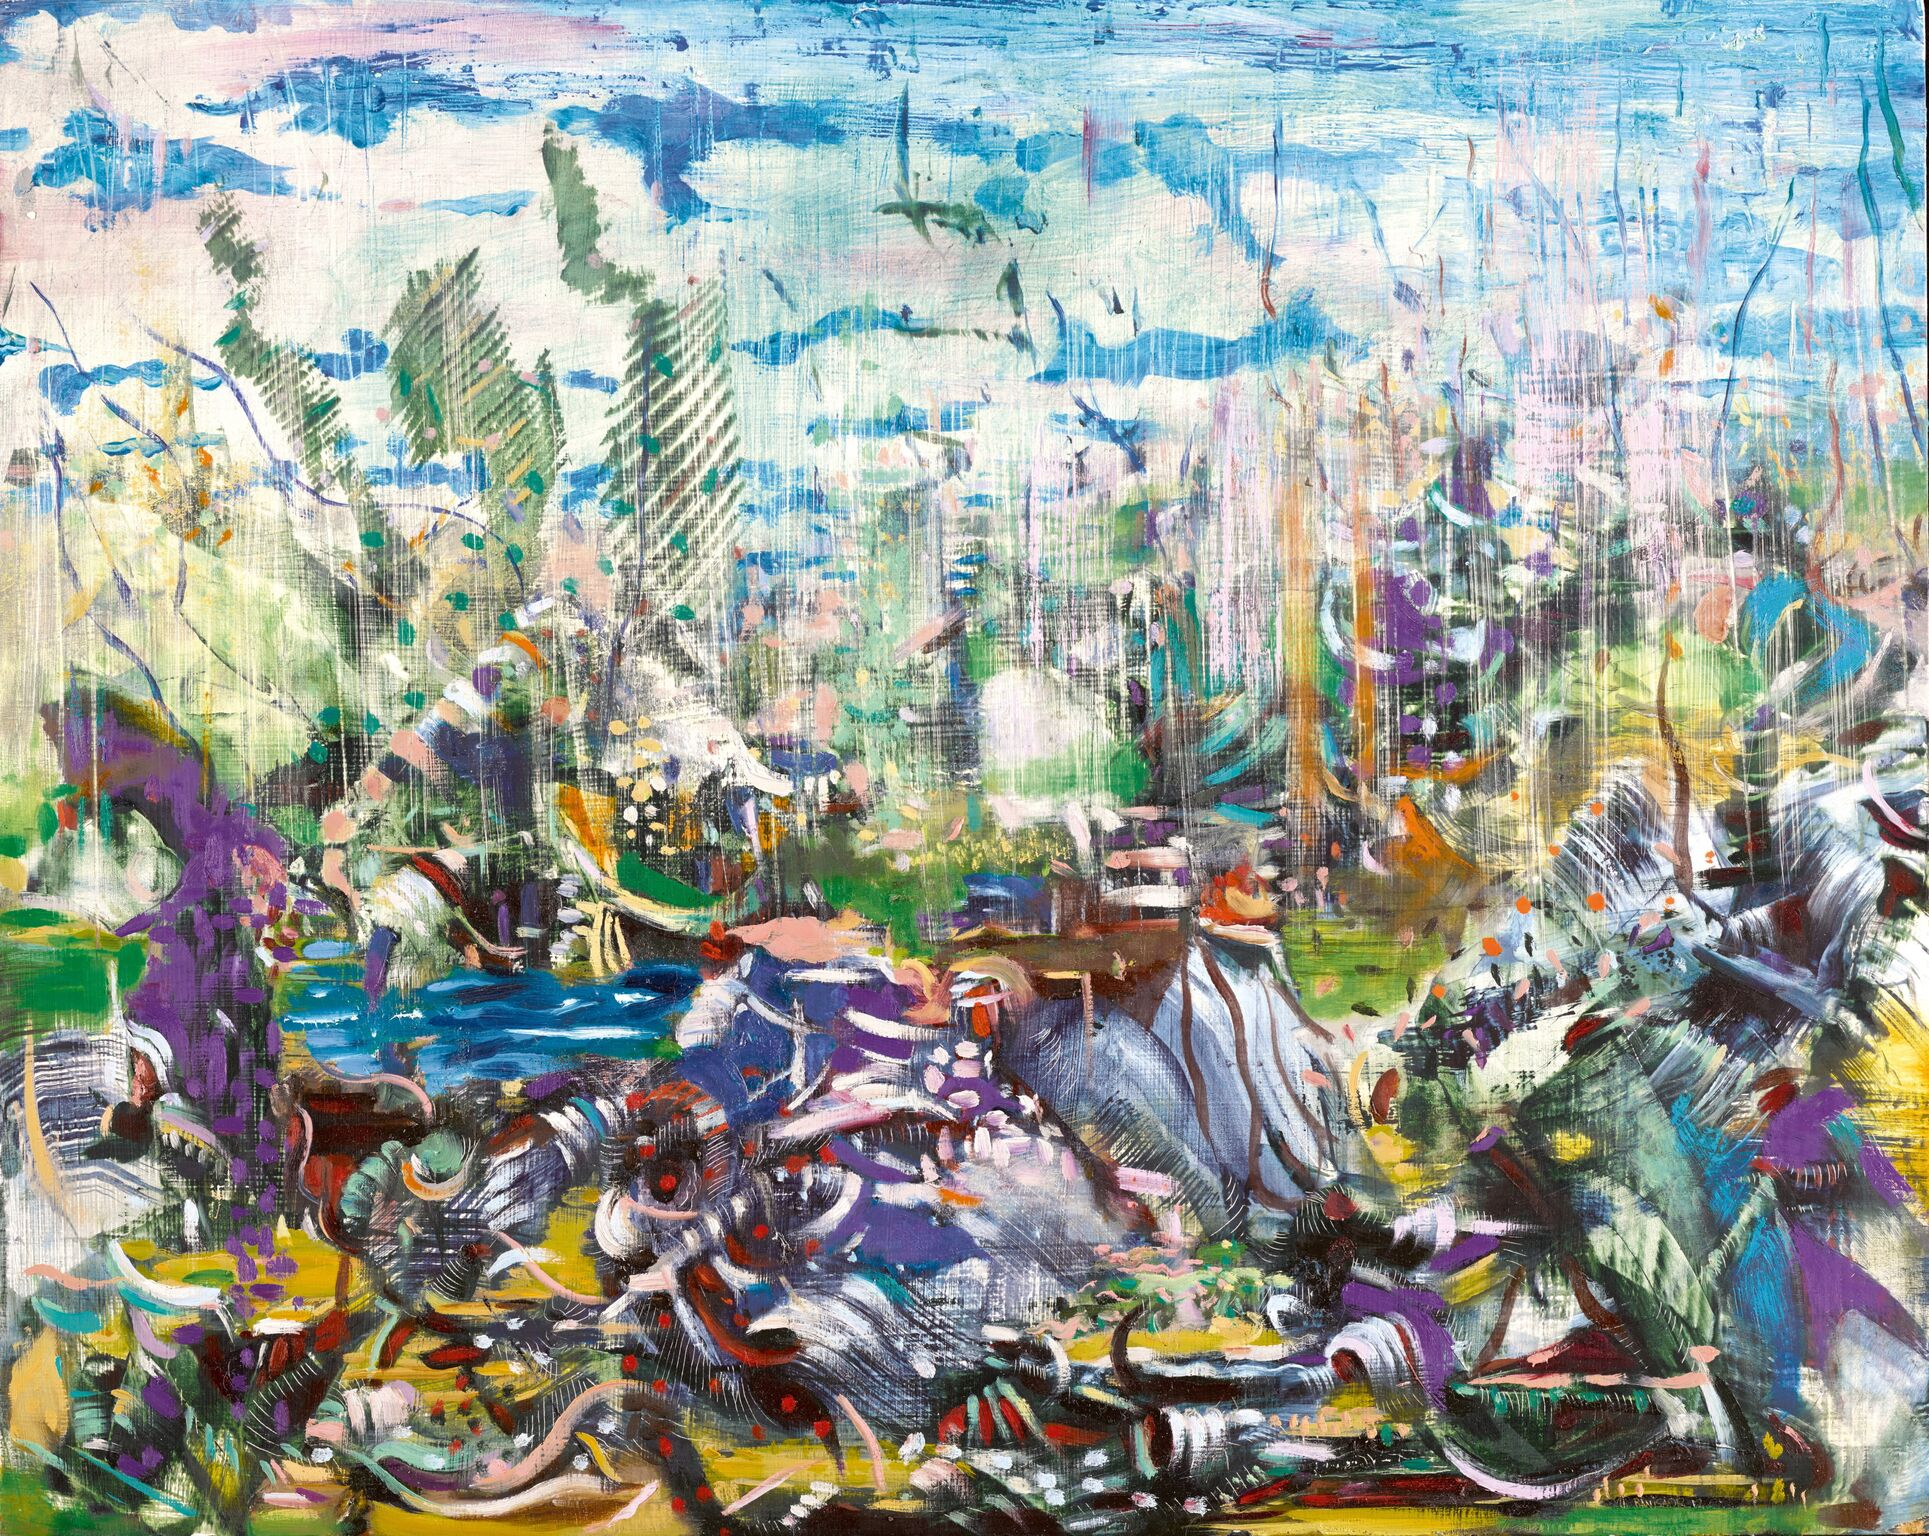 Ali Banisadr, Meanwhile, oil on panel, 2012. Courtesy of Sotheby's